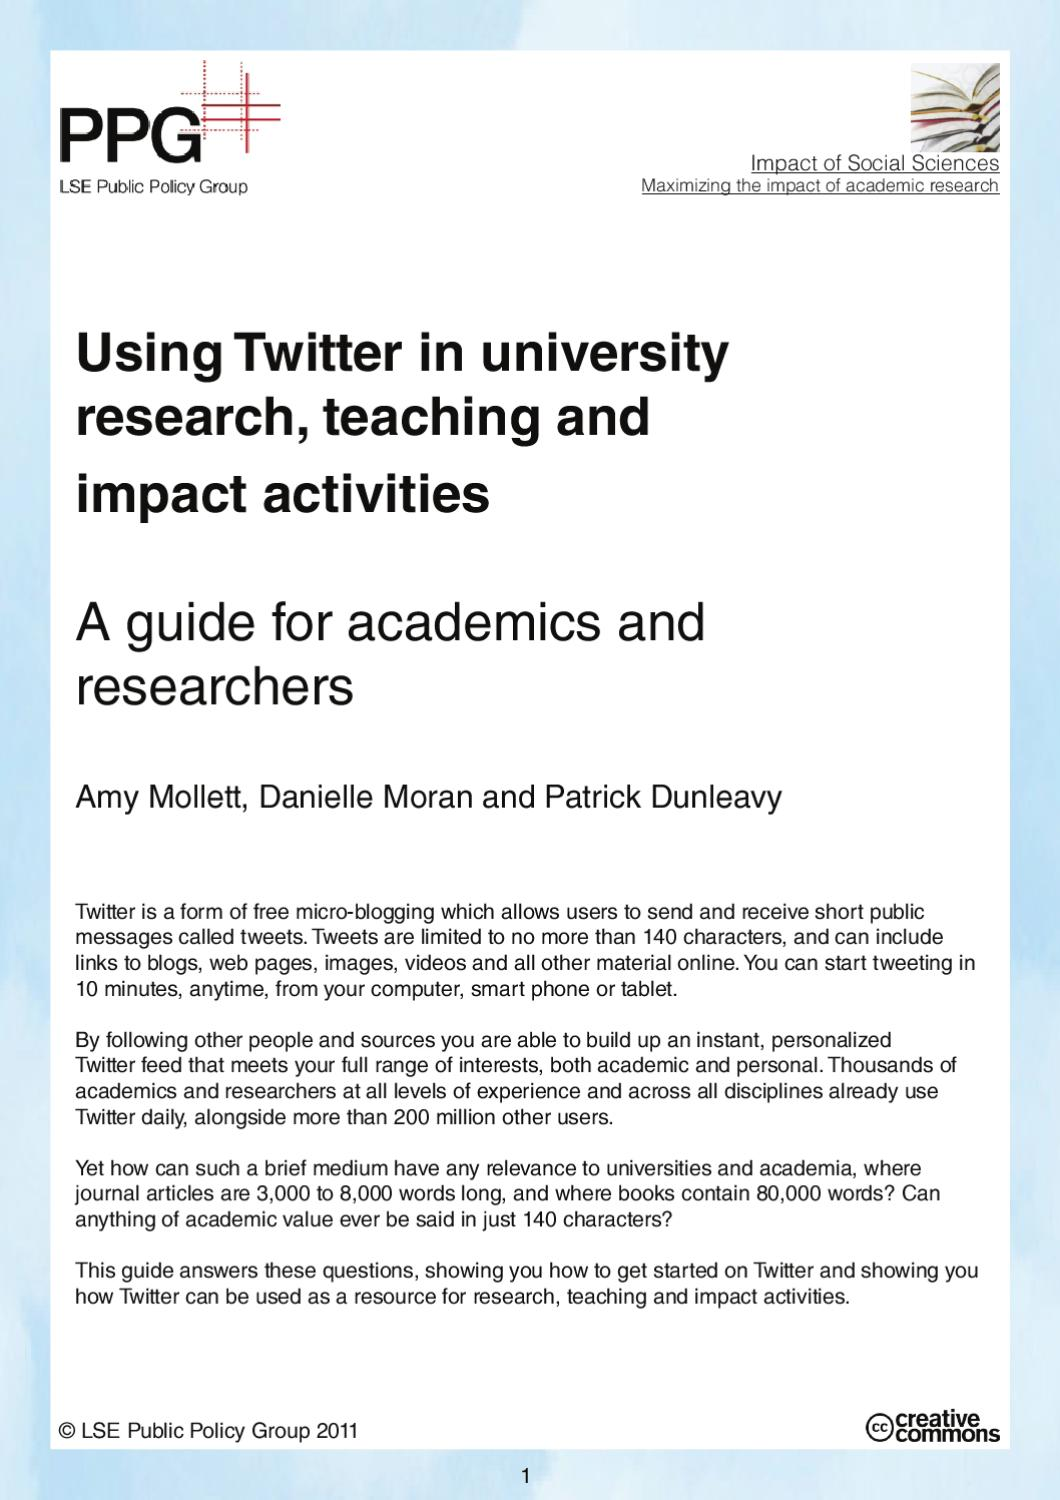 A guide to using Twitter in university research, teaching